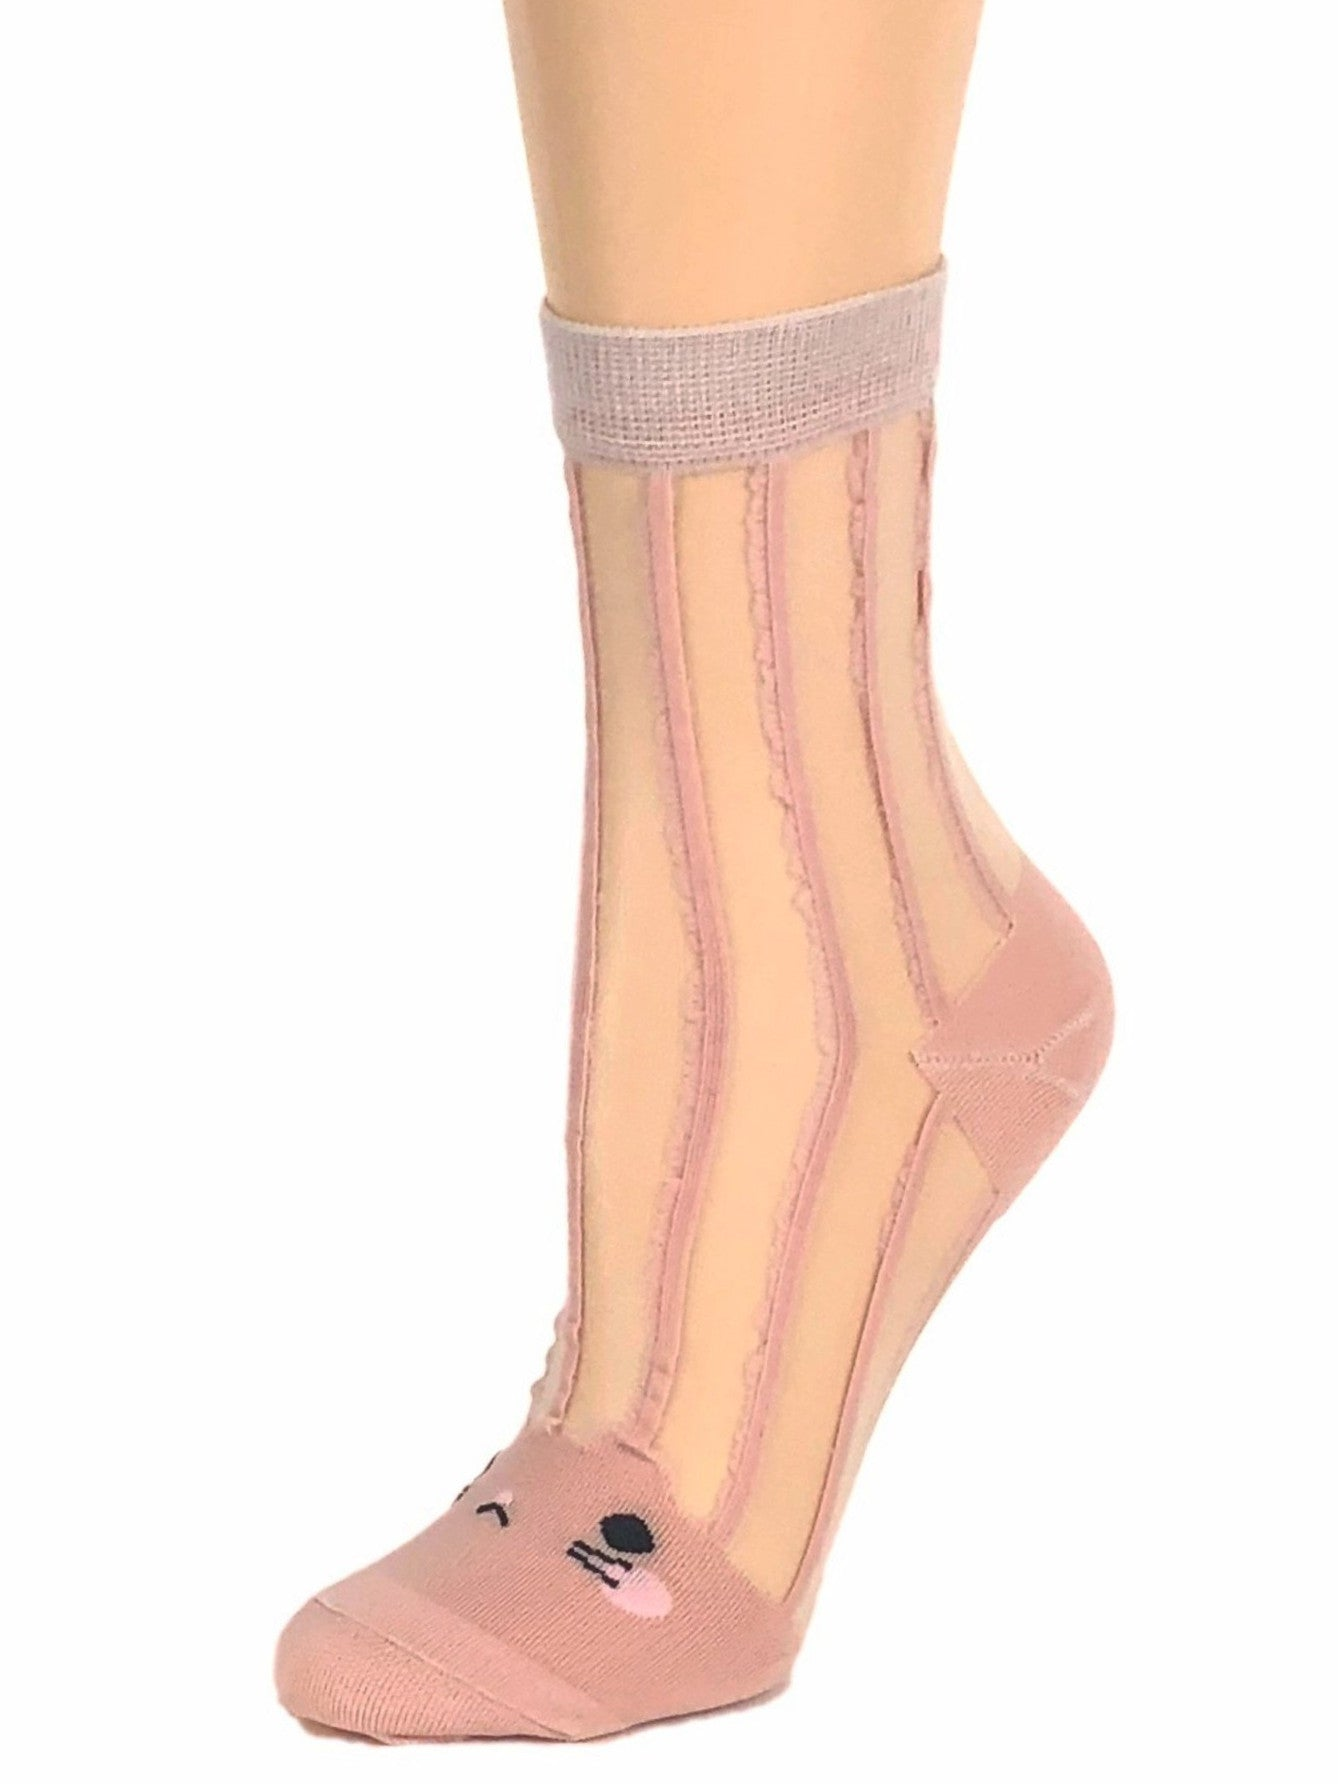 Kitty Tea Pink Sheer Socks - Global Trendz Fashion®